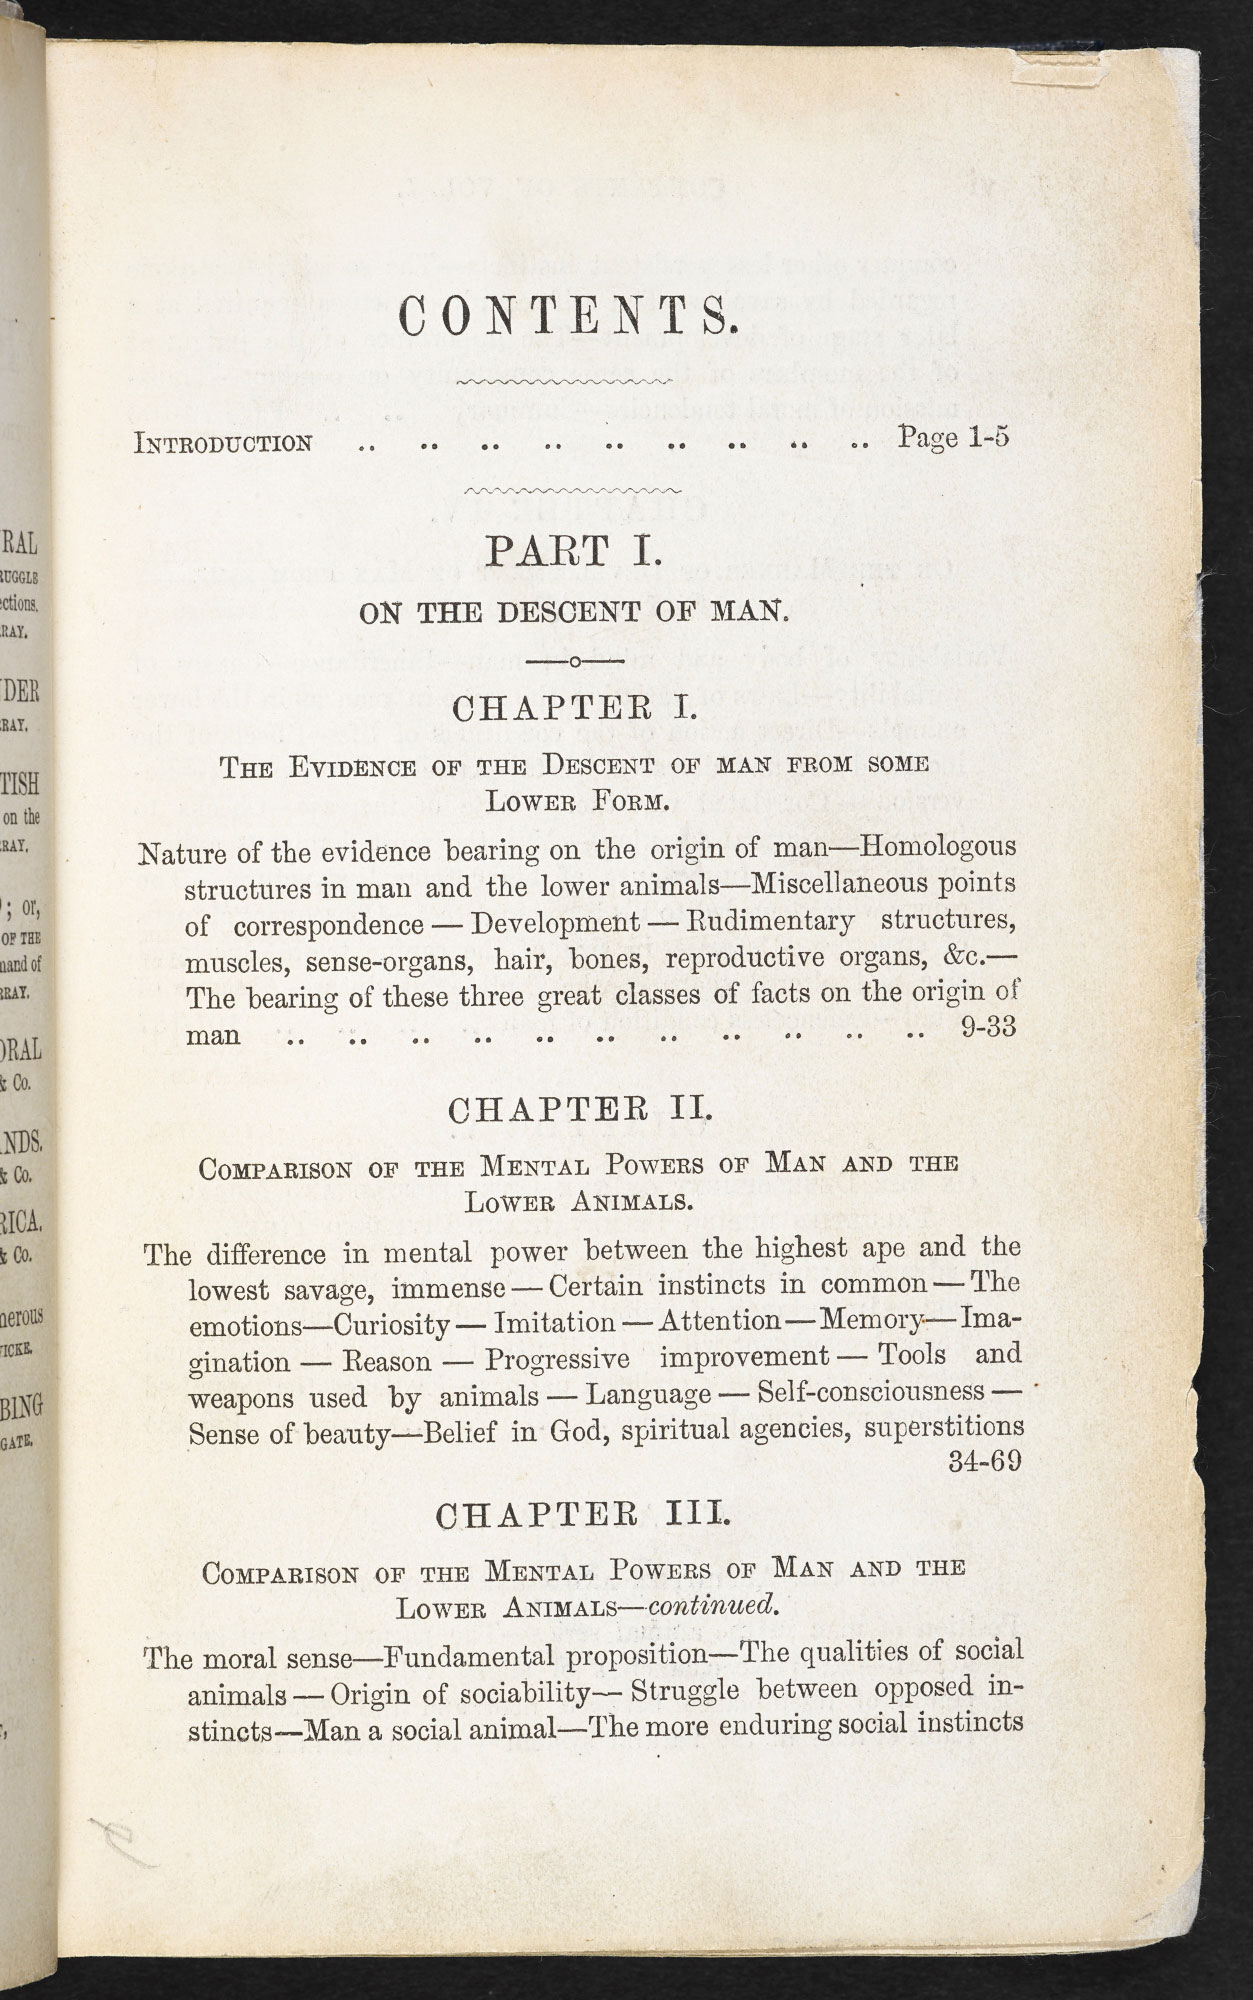 essays written by charles darwin Free charles darwin papers, essays, and research papers.